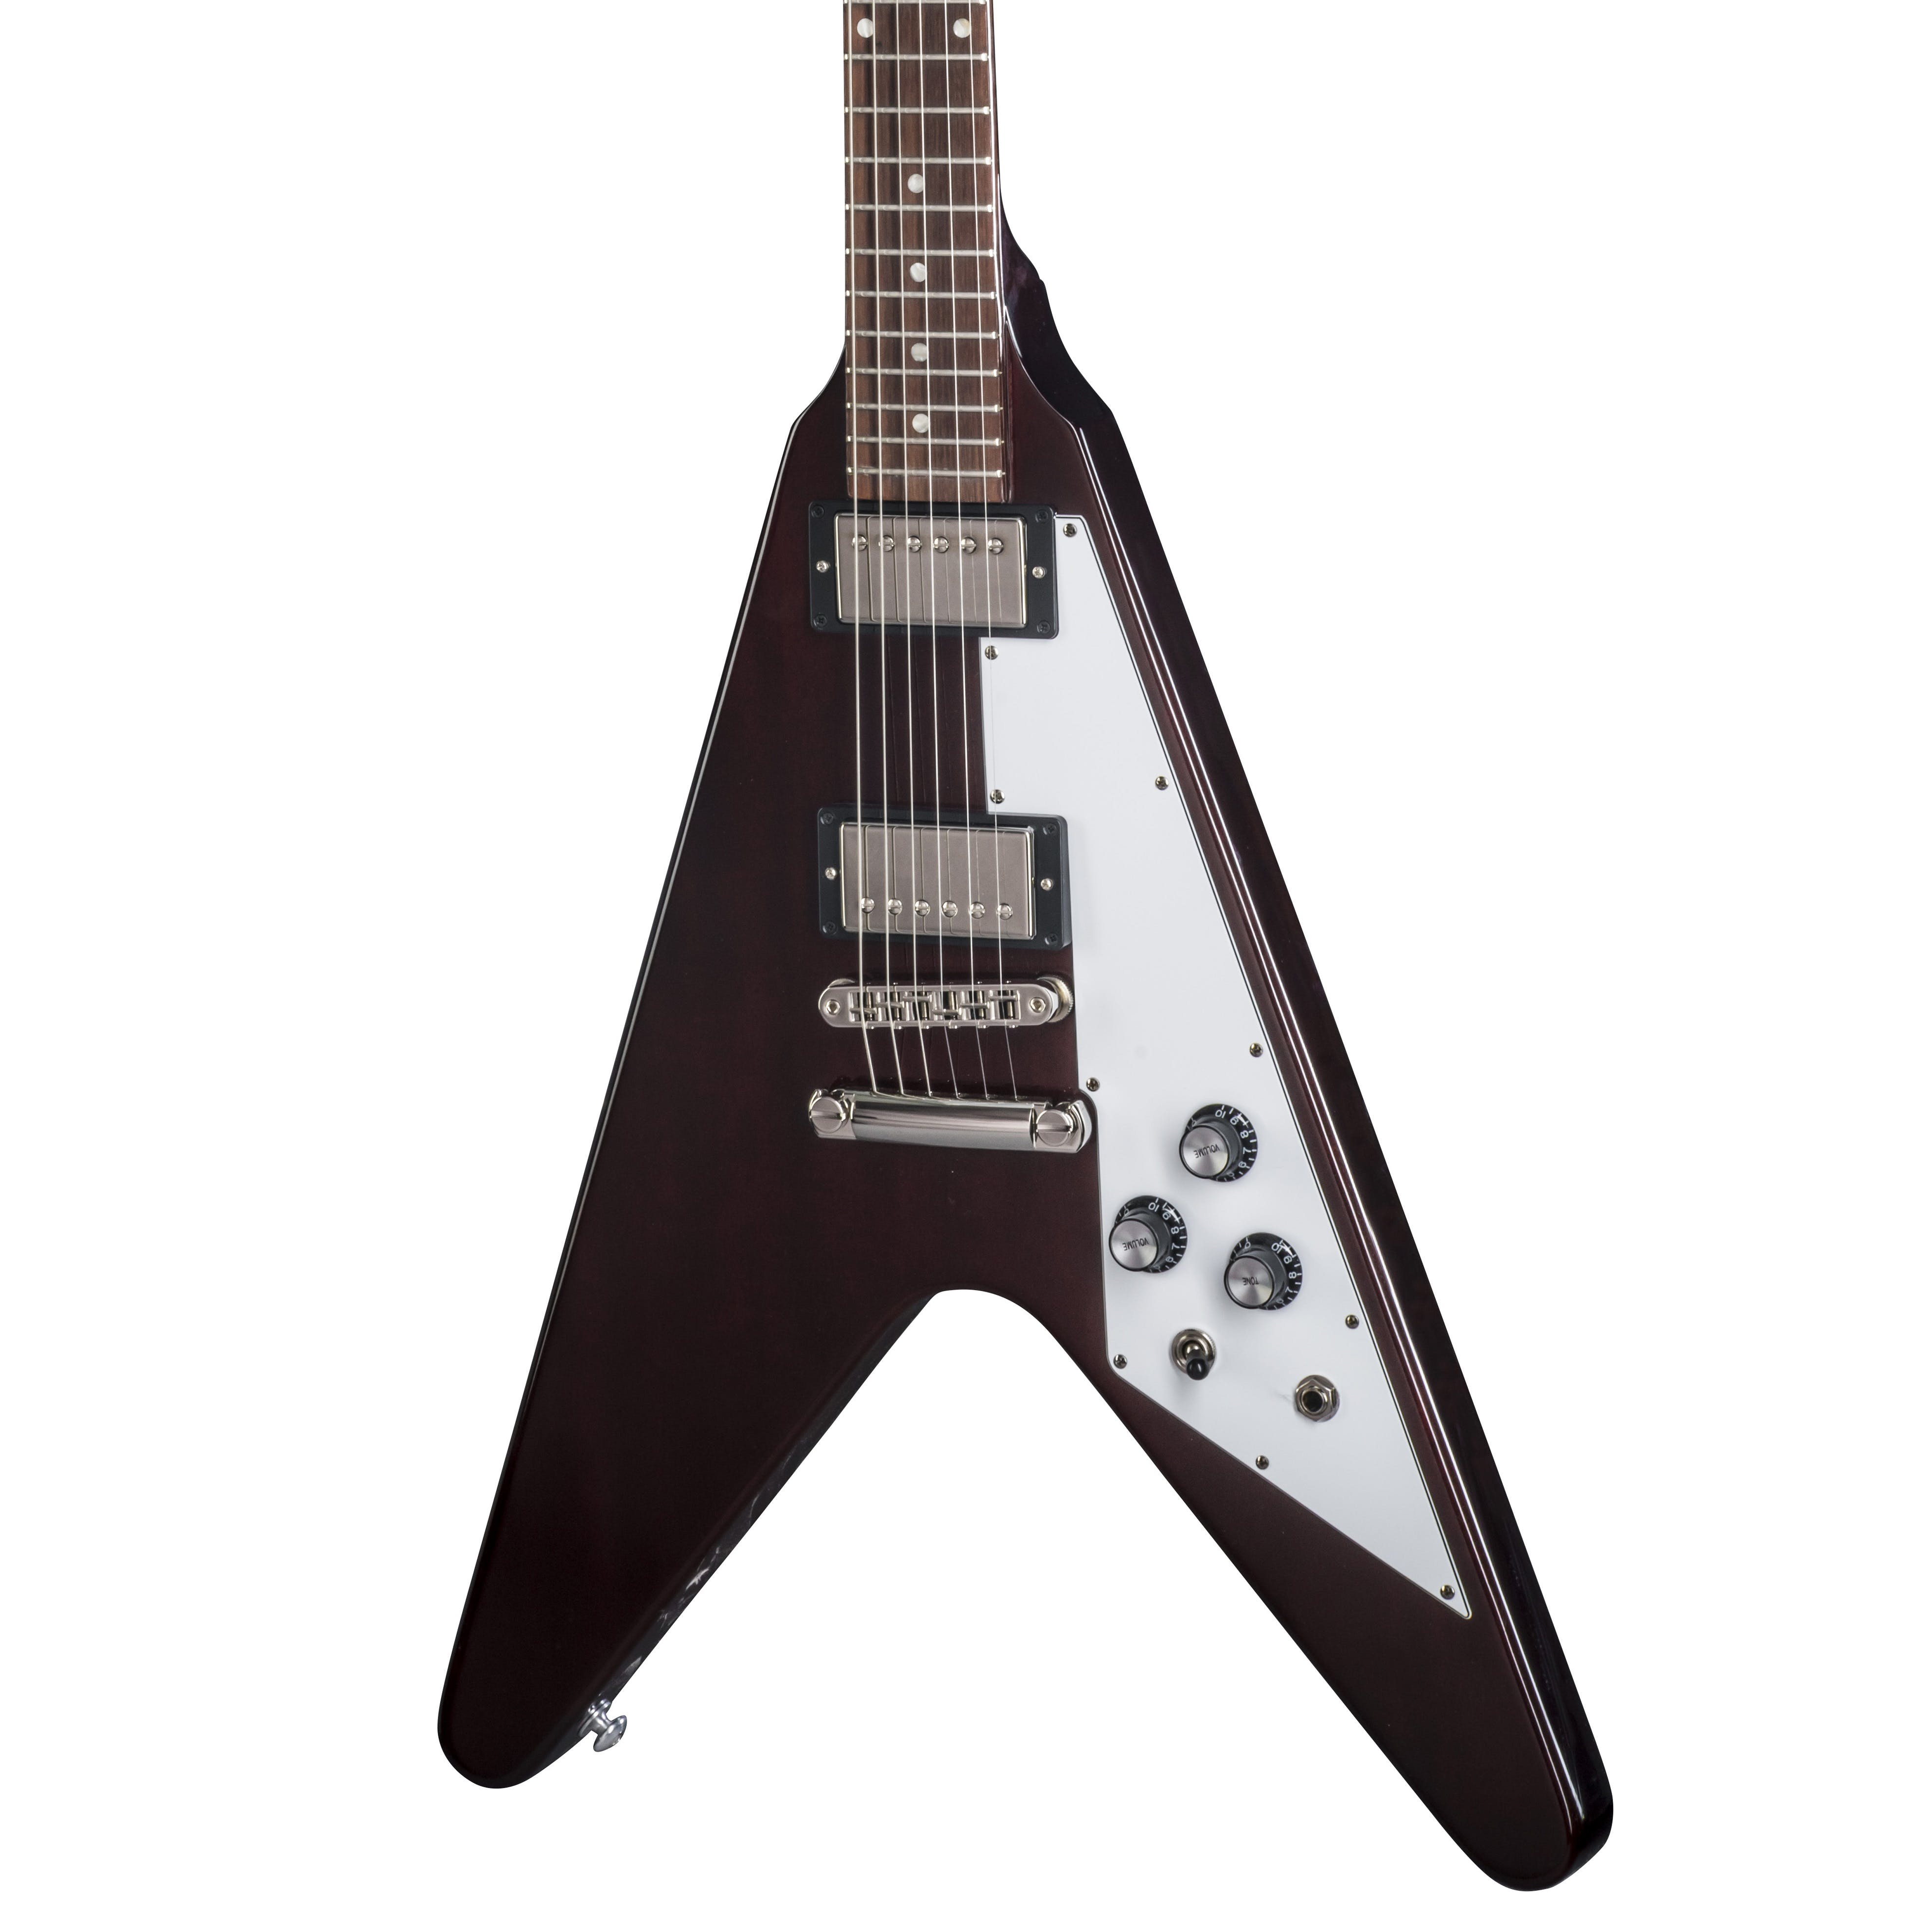 Gibson Usa 2018 Flying V In Aged Cherry Andertons Music Co 500t Super Ceramic Bridge Humbucker Electric Guitar Pickup